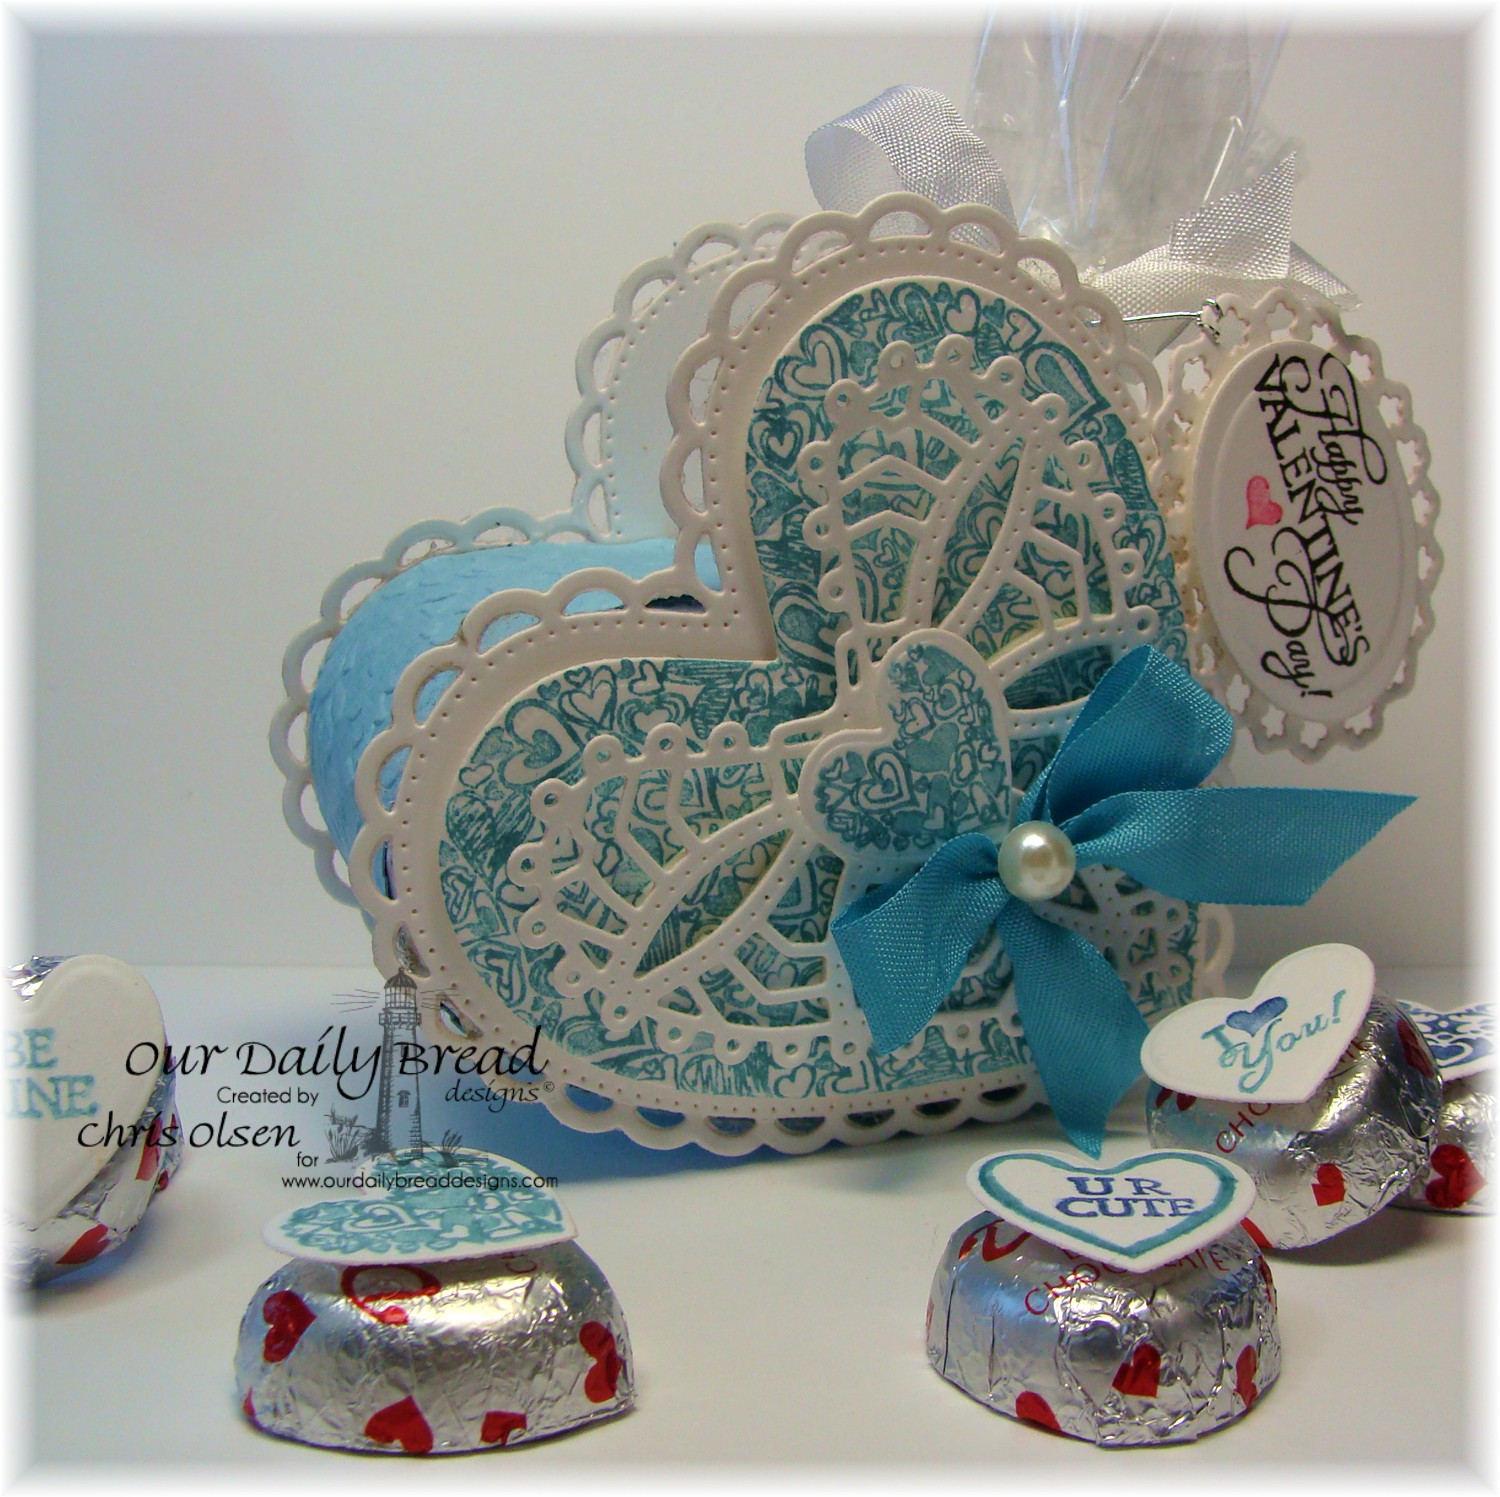 Stamps - Our Daily Bread Designs Heart of Joy, Be Mine, Bless Your Heart, ODBD Custom Ornate Hearts Die